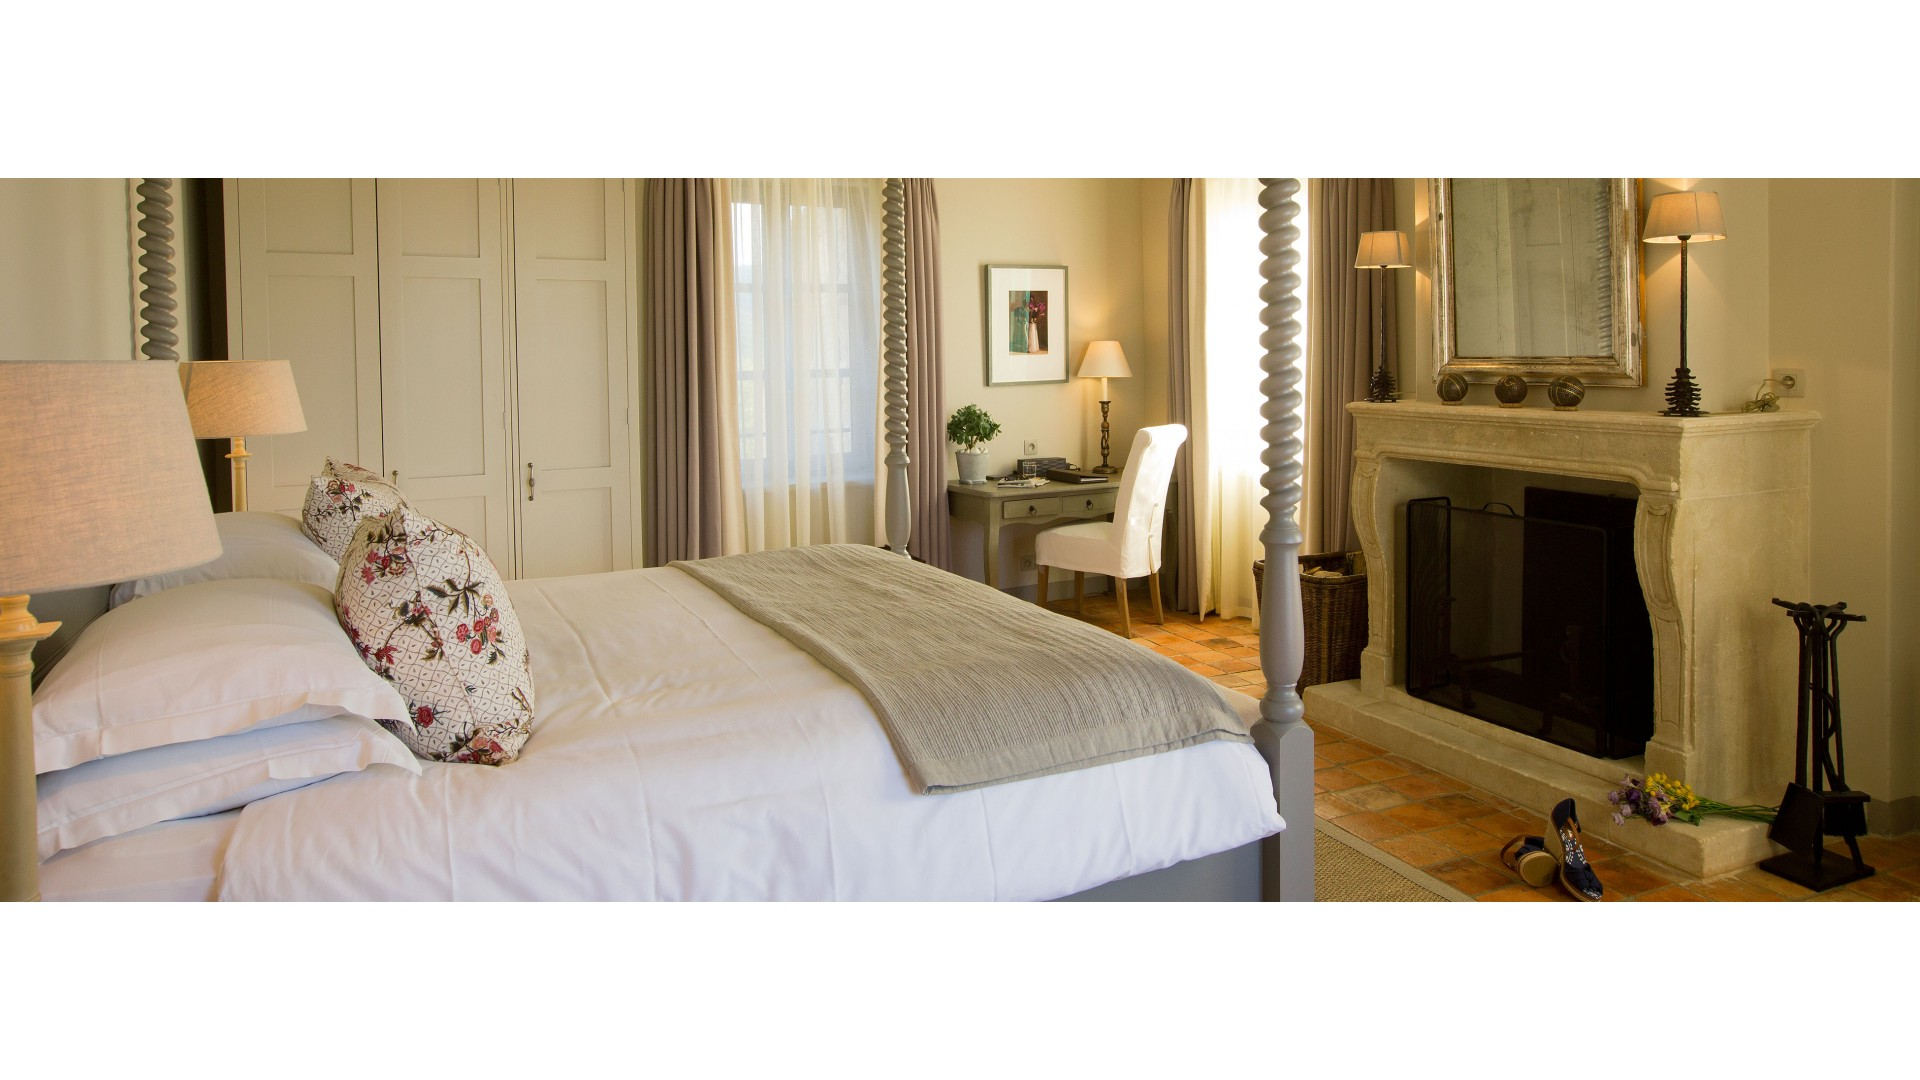 home staging avignon dco home staging cuisine bois la rochelle deco home staging cuisine. Black Bedroom Furniture Sets. Home Design Ideas